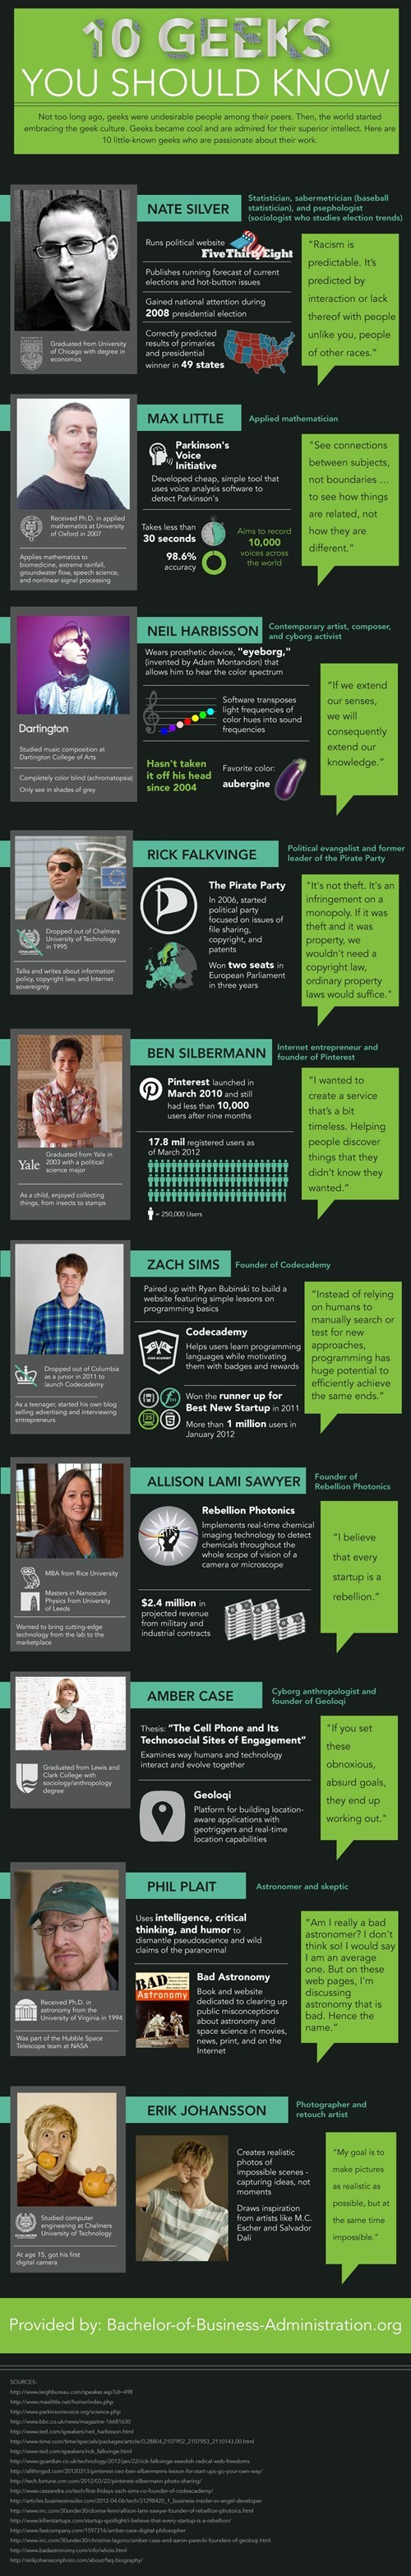 getting to know nate silver infographics geeks - 6850745856